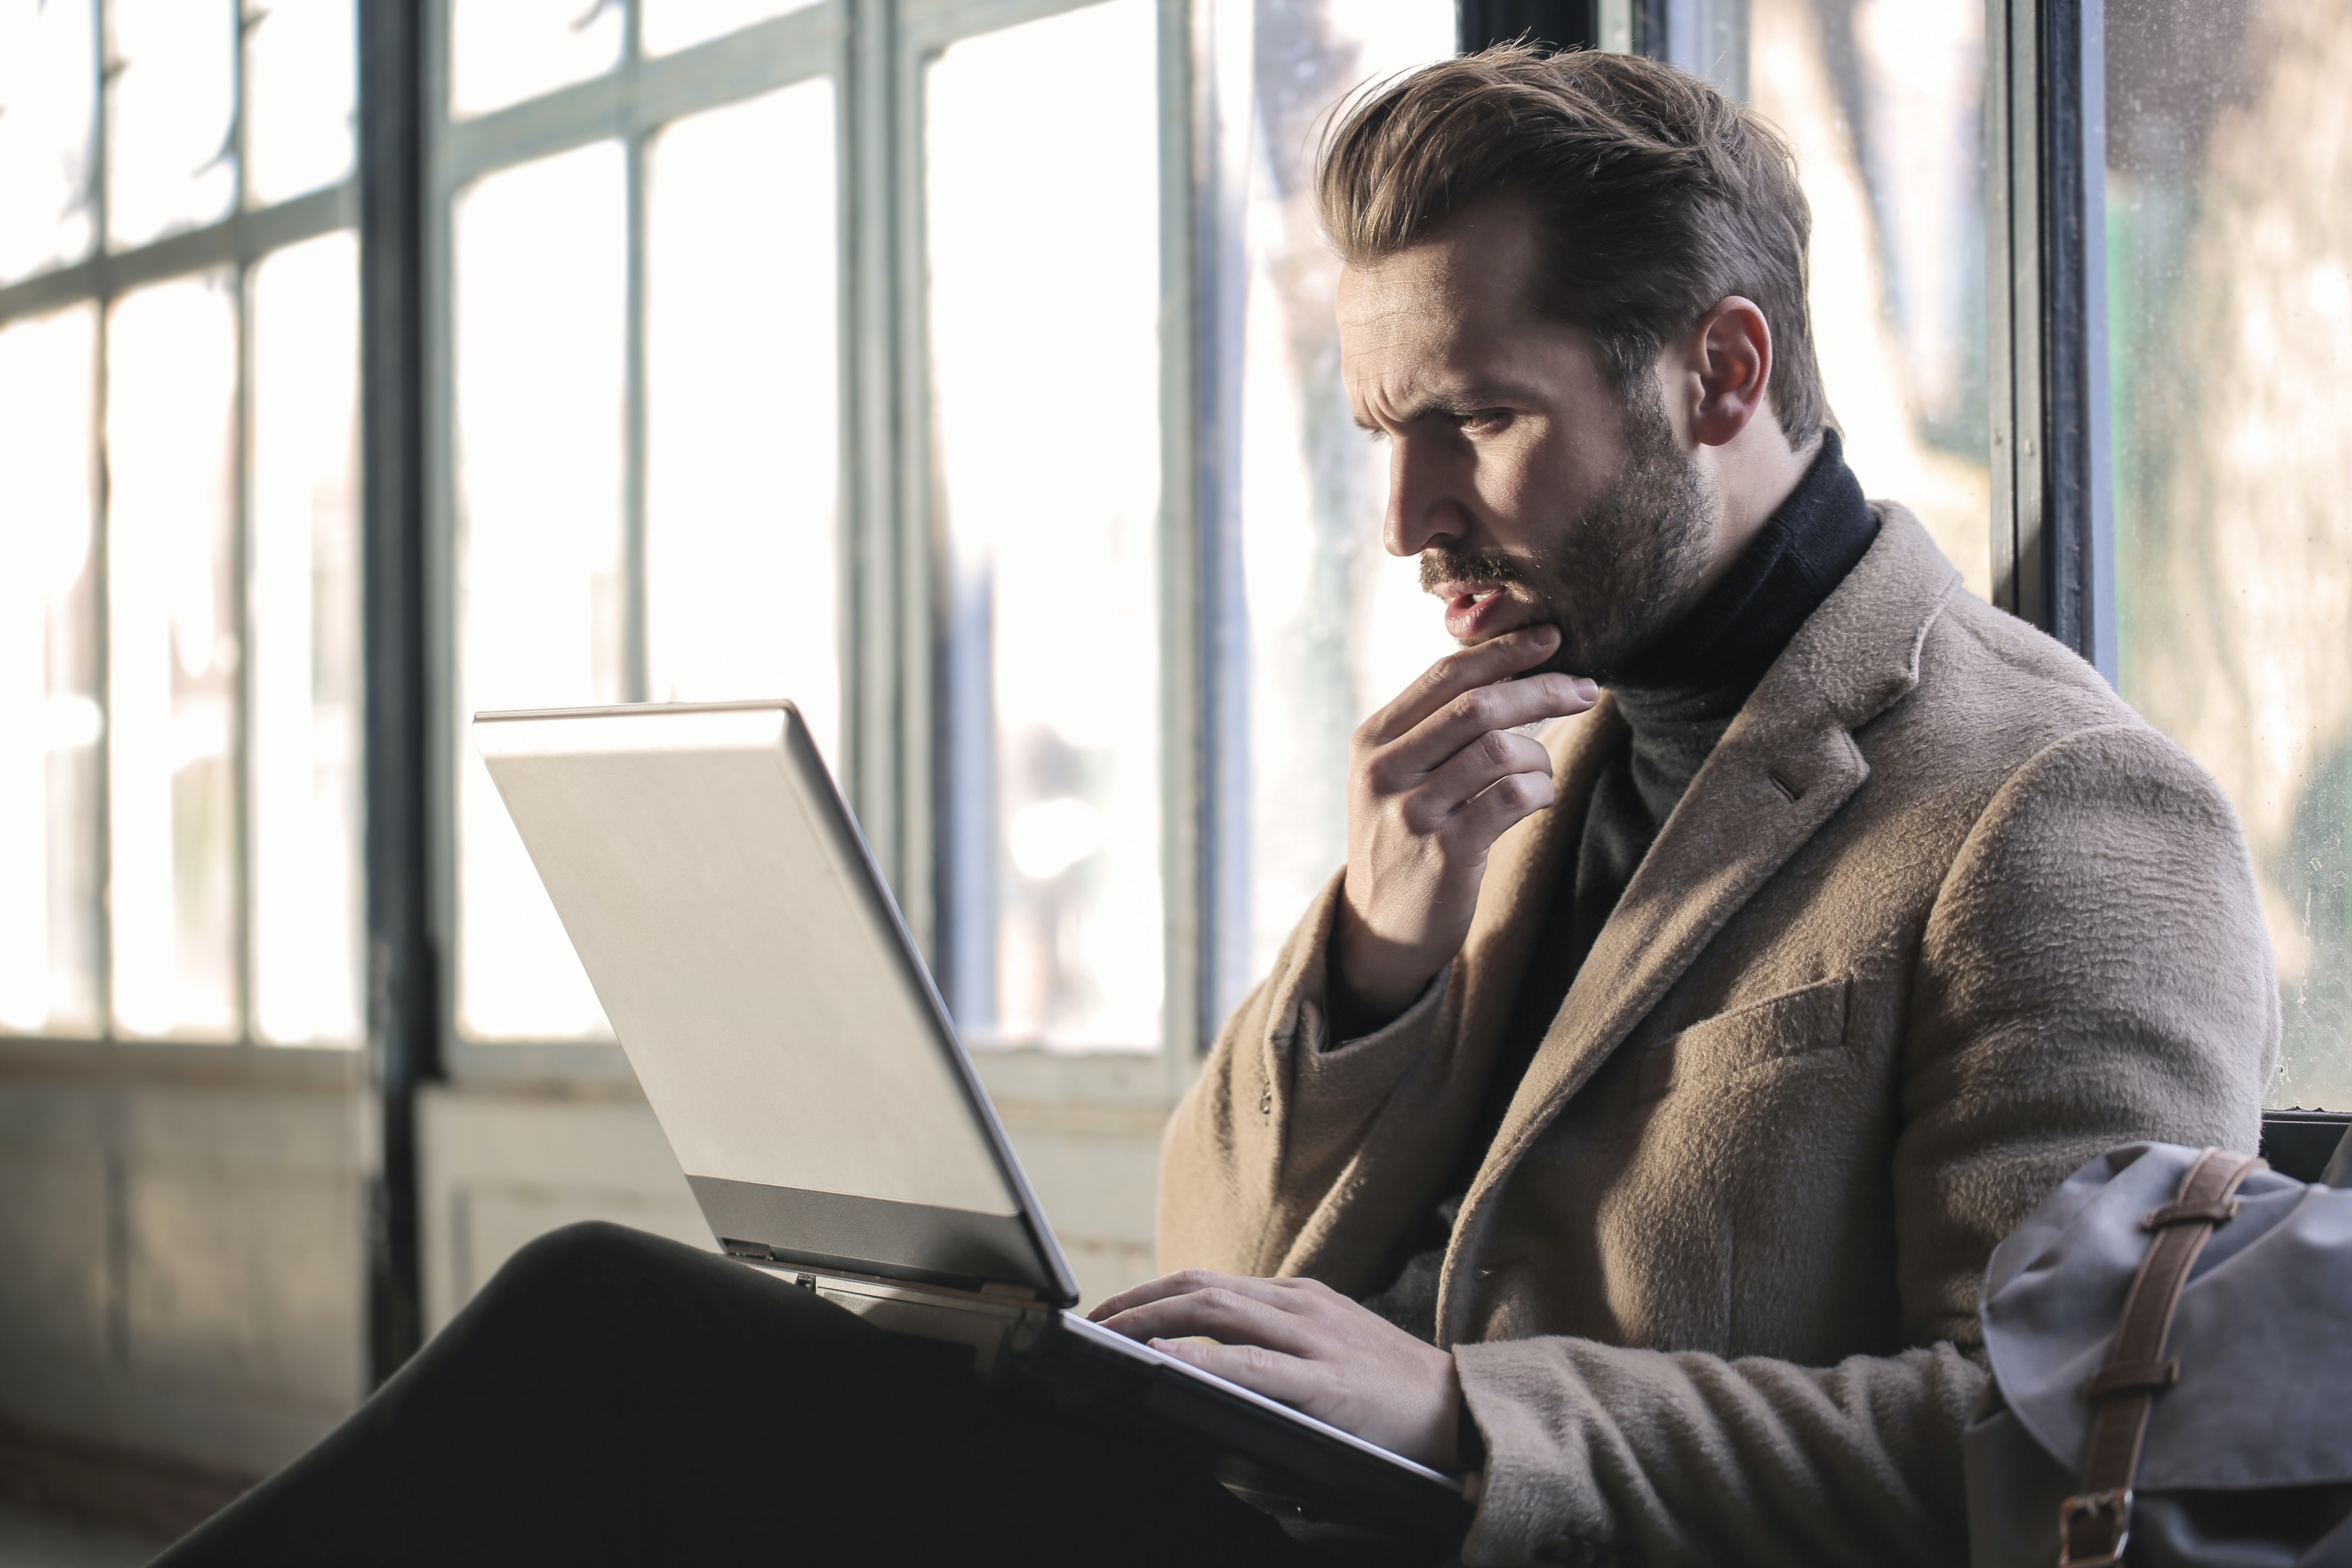 Man with laptop on lap reads screen with surprised expression